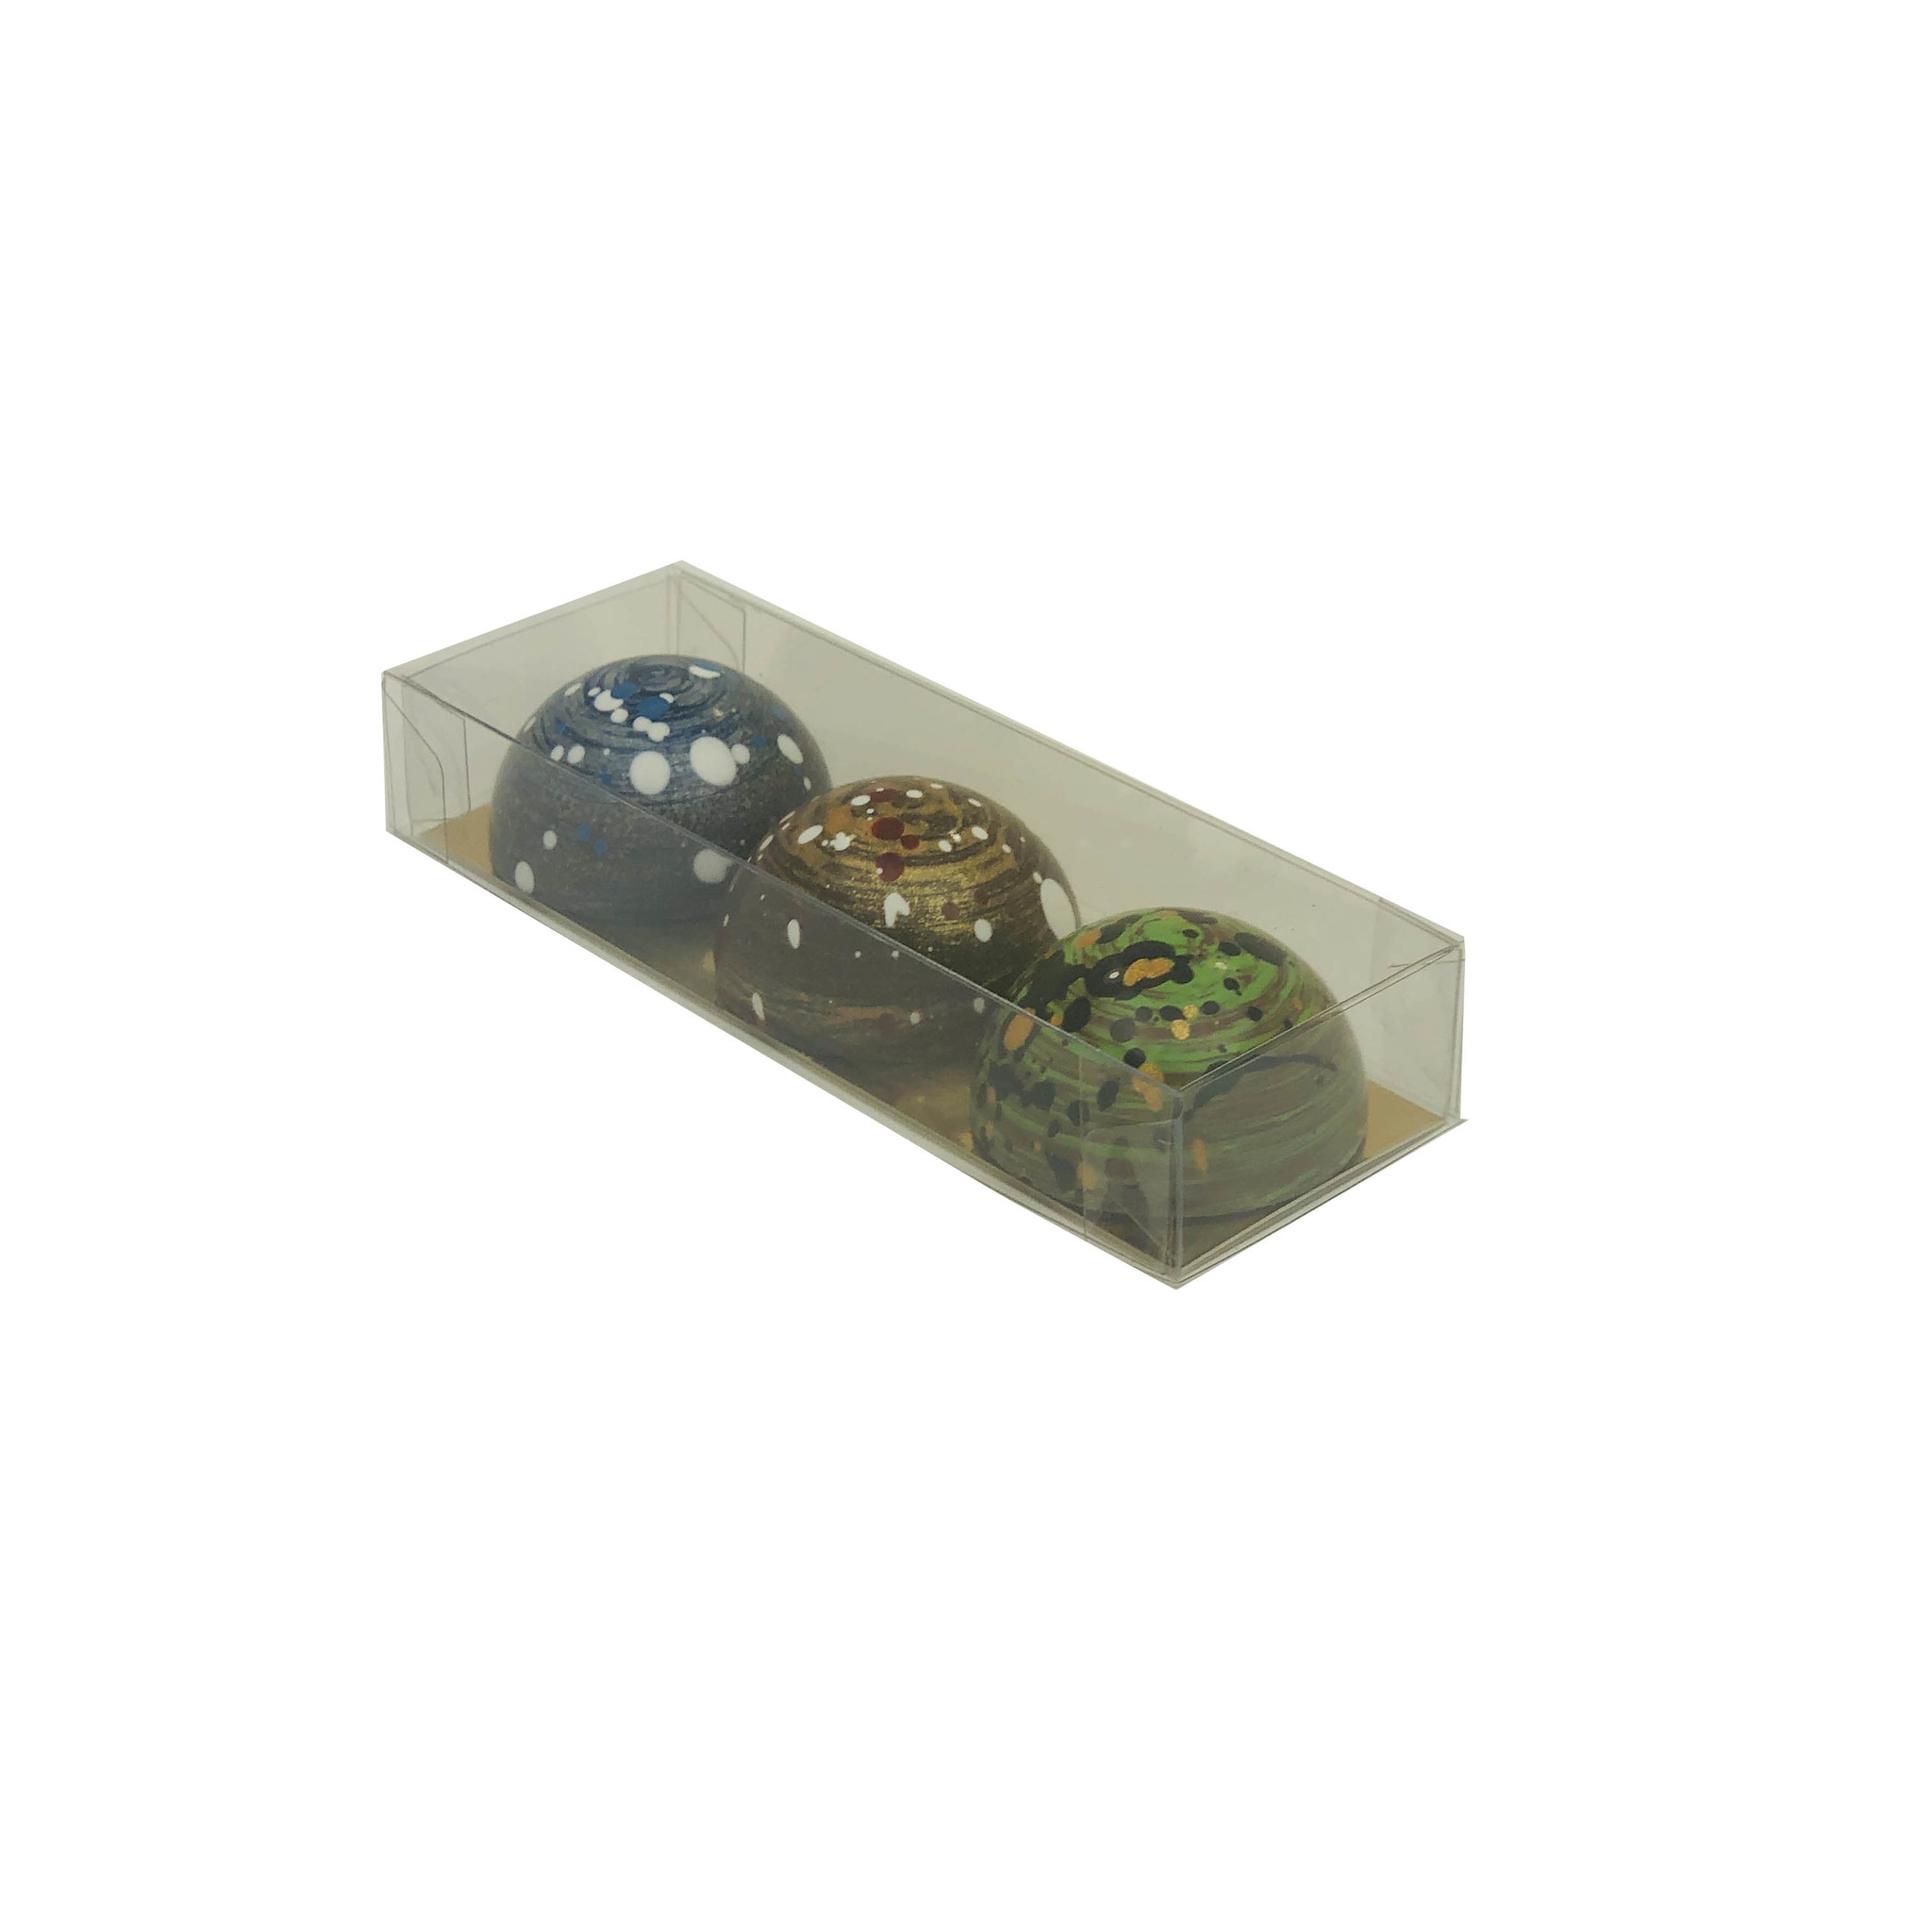 Transparant box with gold carton - 120*40*20mm - 80 pieces